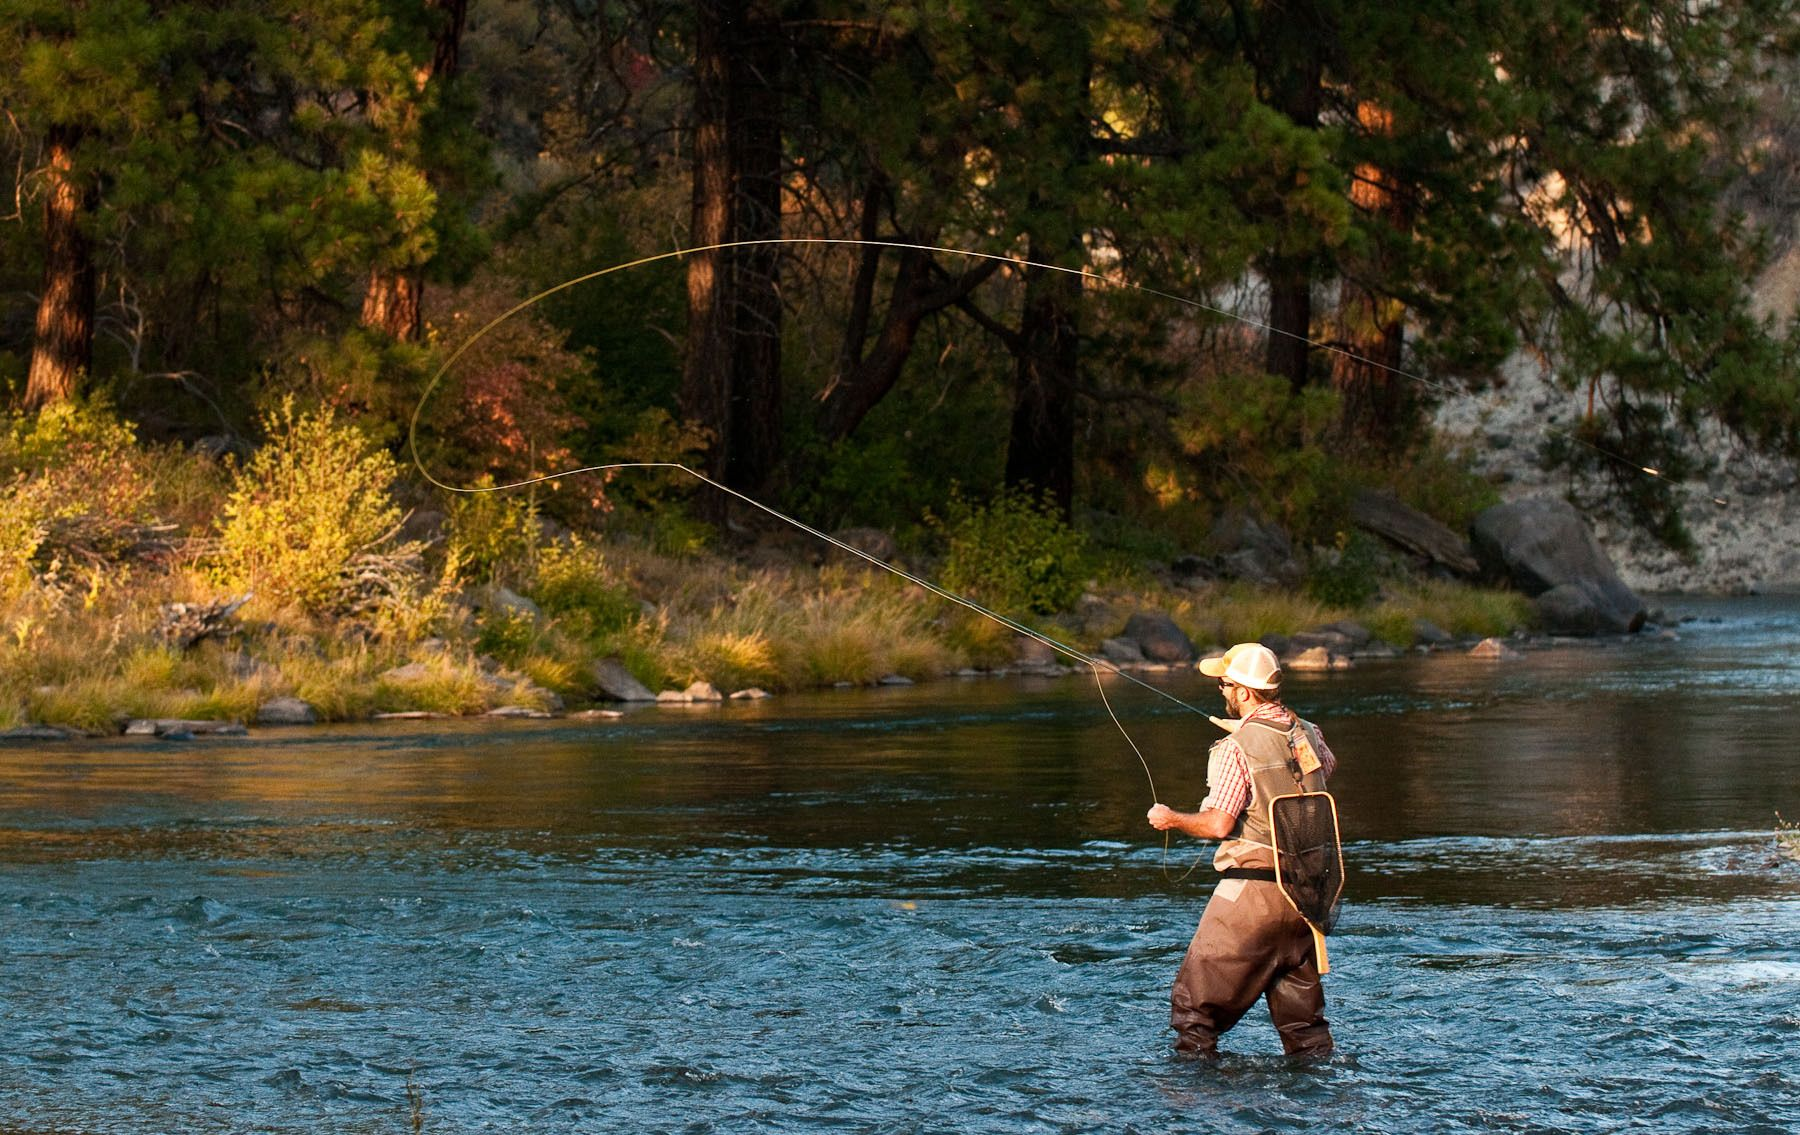 Fly Fishing in the Truckee River